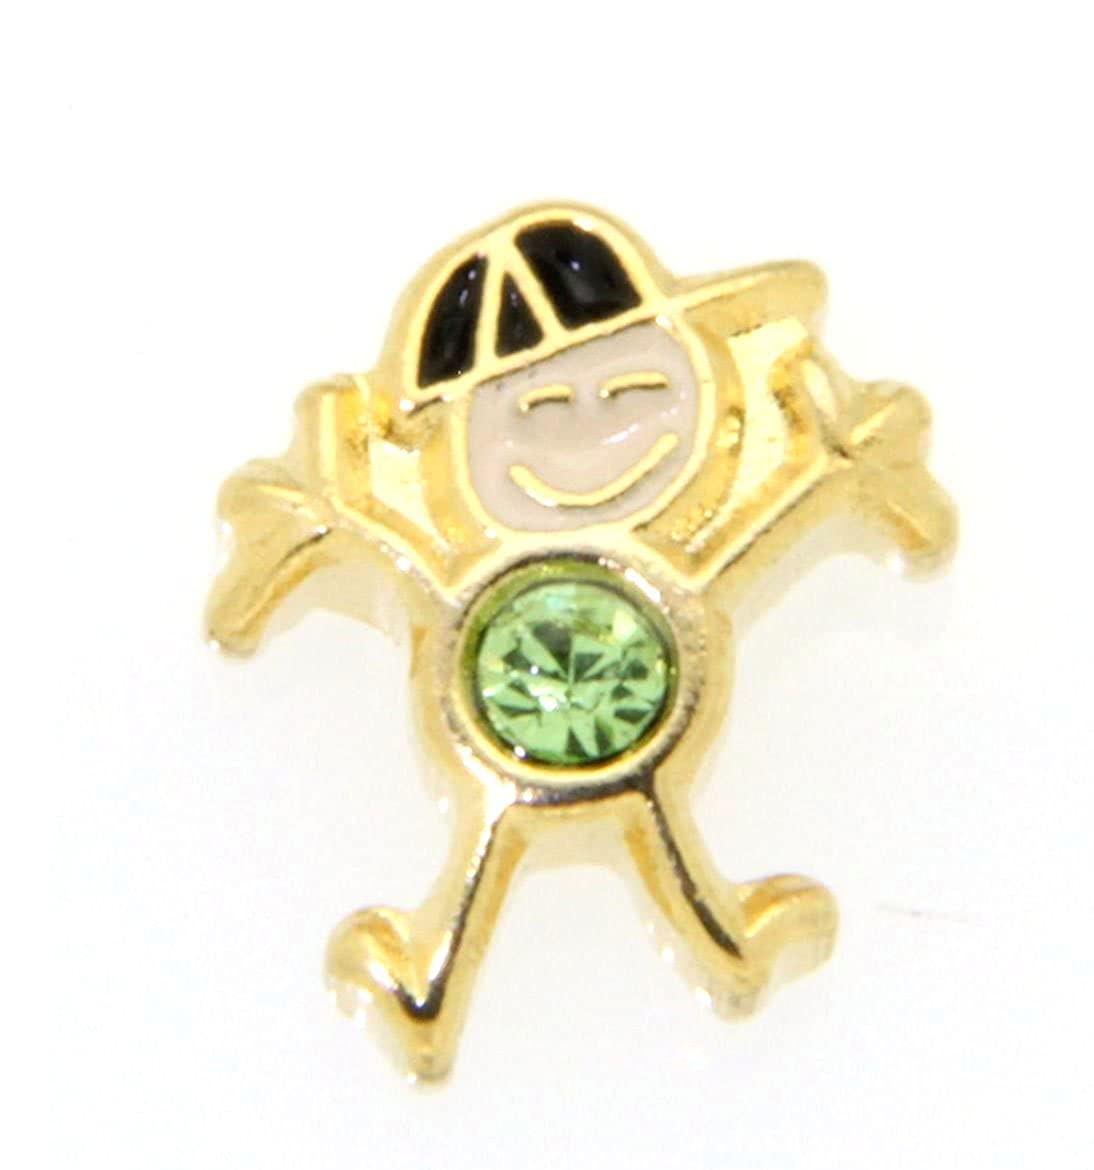 August Birth Month Boy Charm for Floating Lockets Clearly Charming 010-013-010-0152